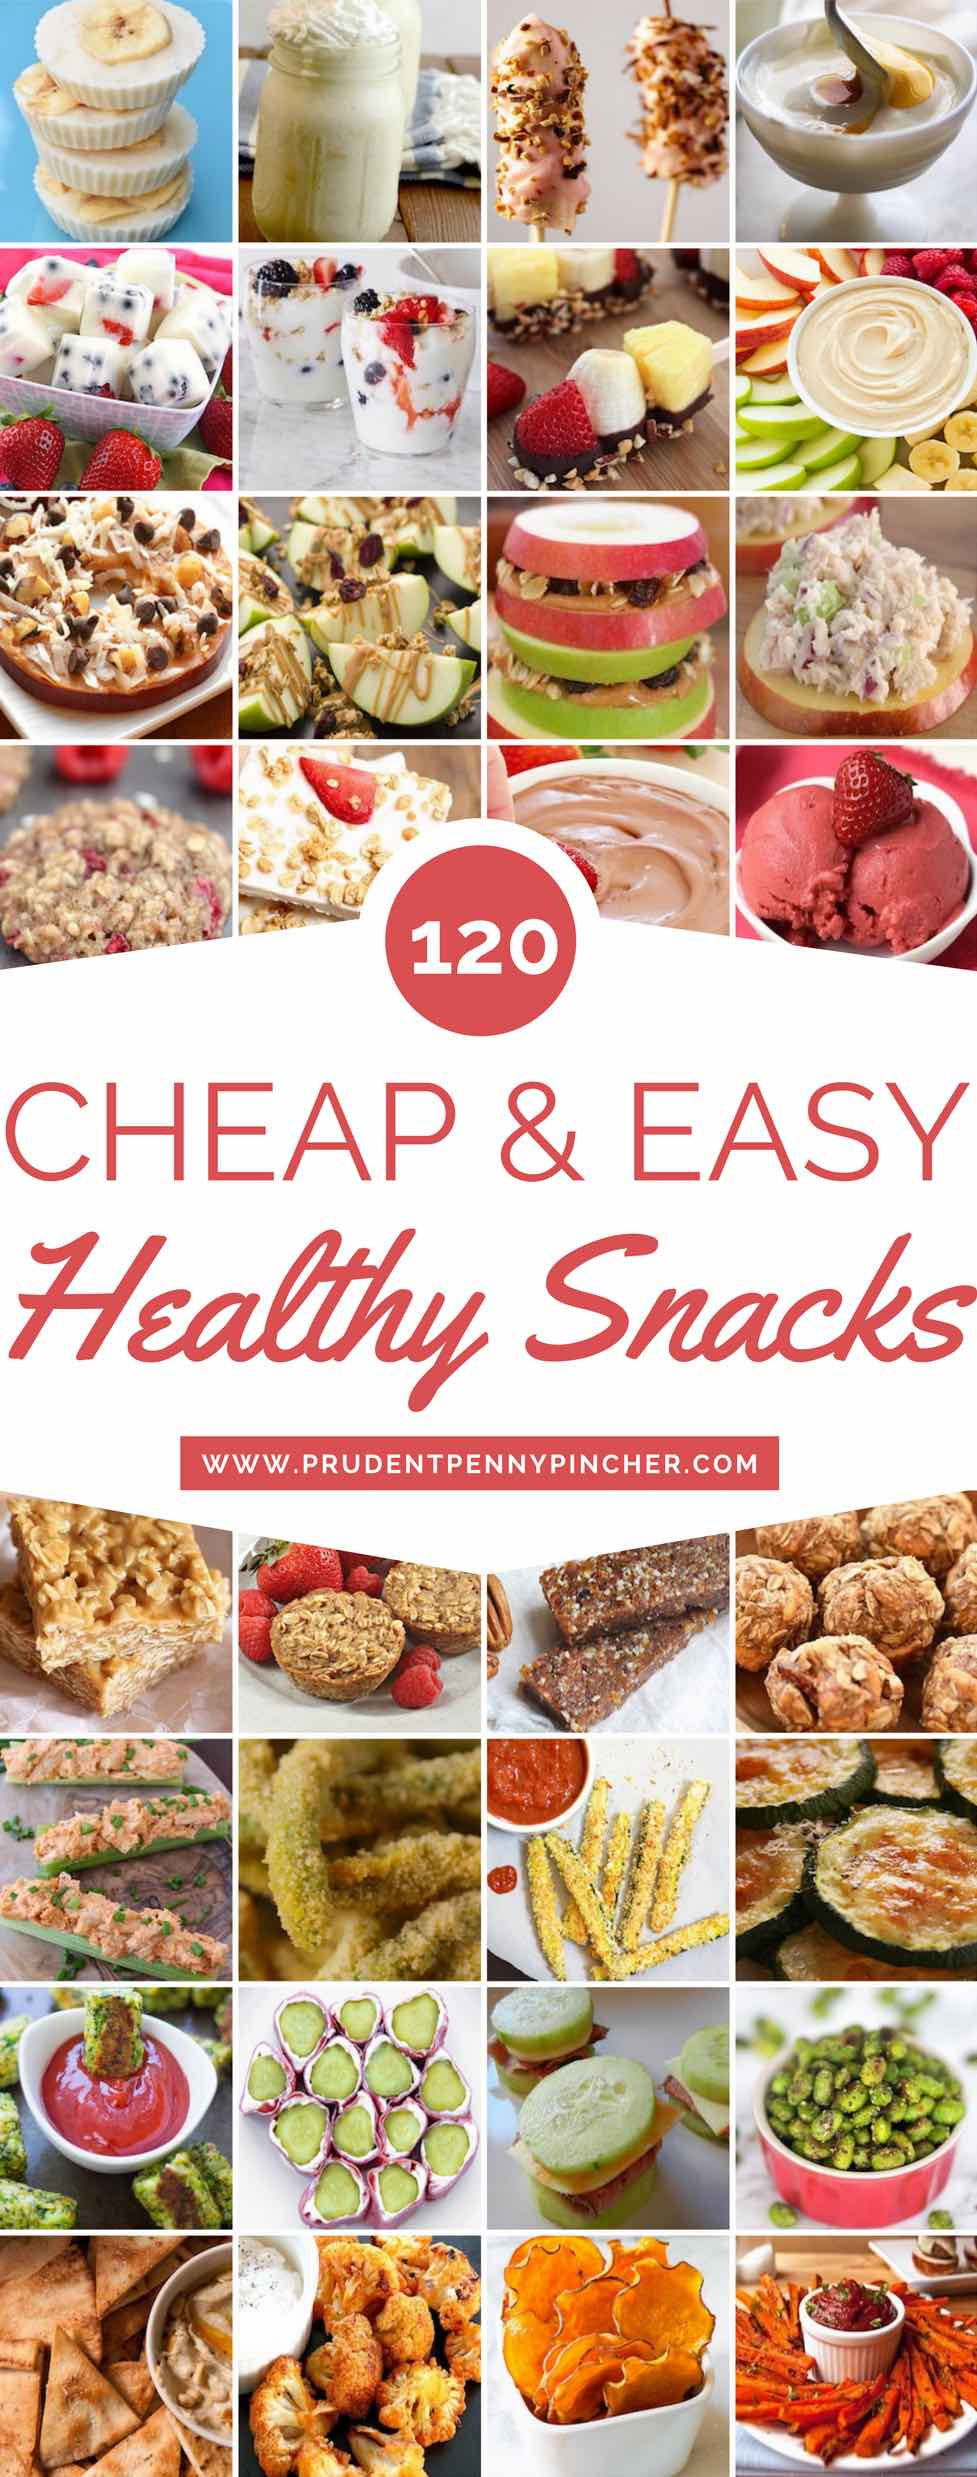 120 Cheap and Healthy Snacks